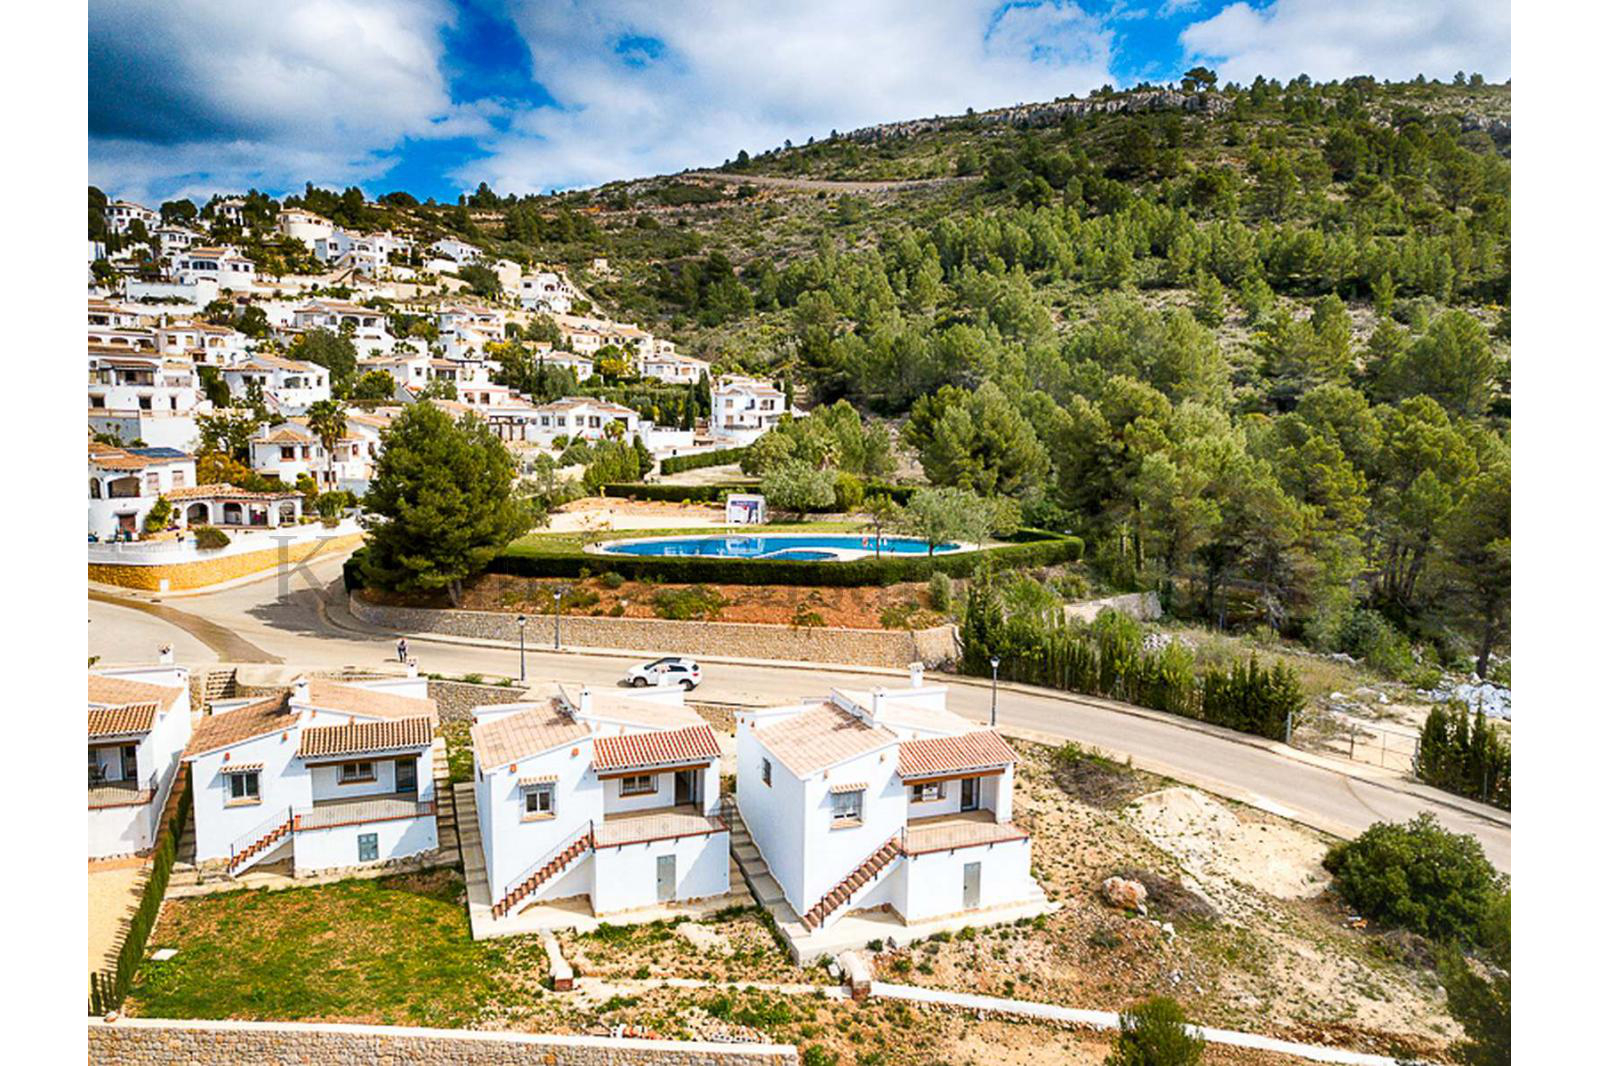 Murla- Detached villas, ready to move into on the Costa Blanca pic 5